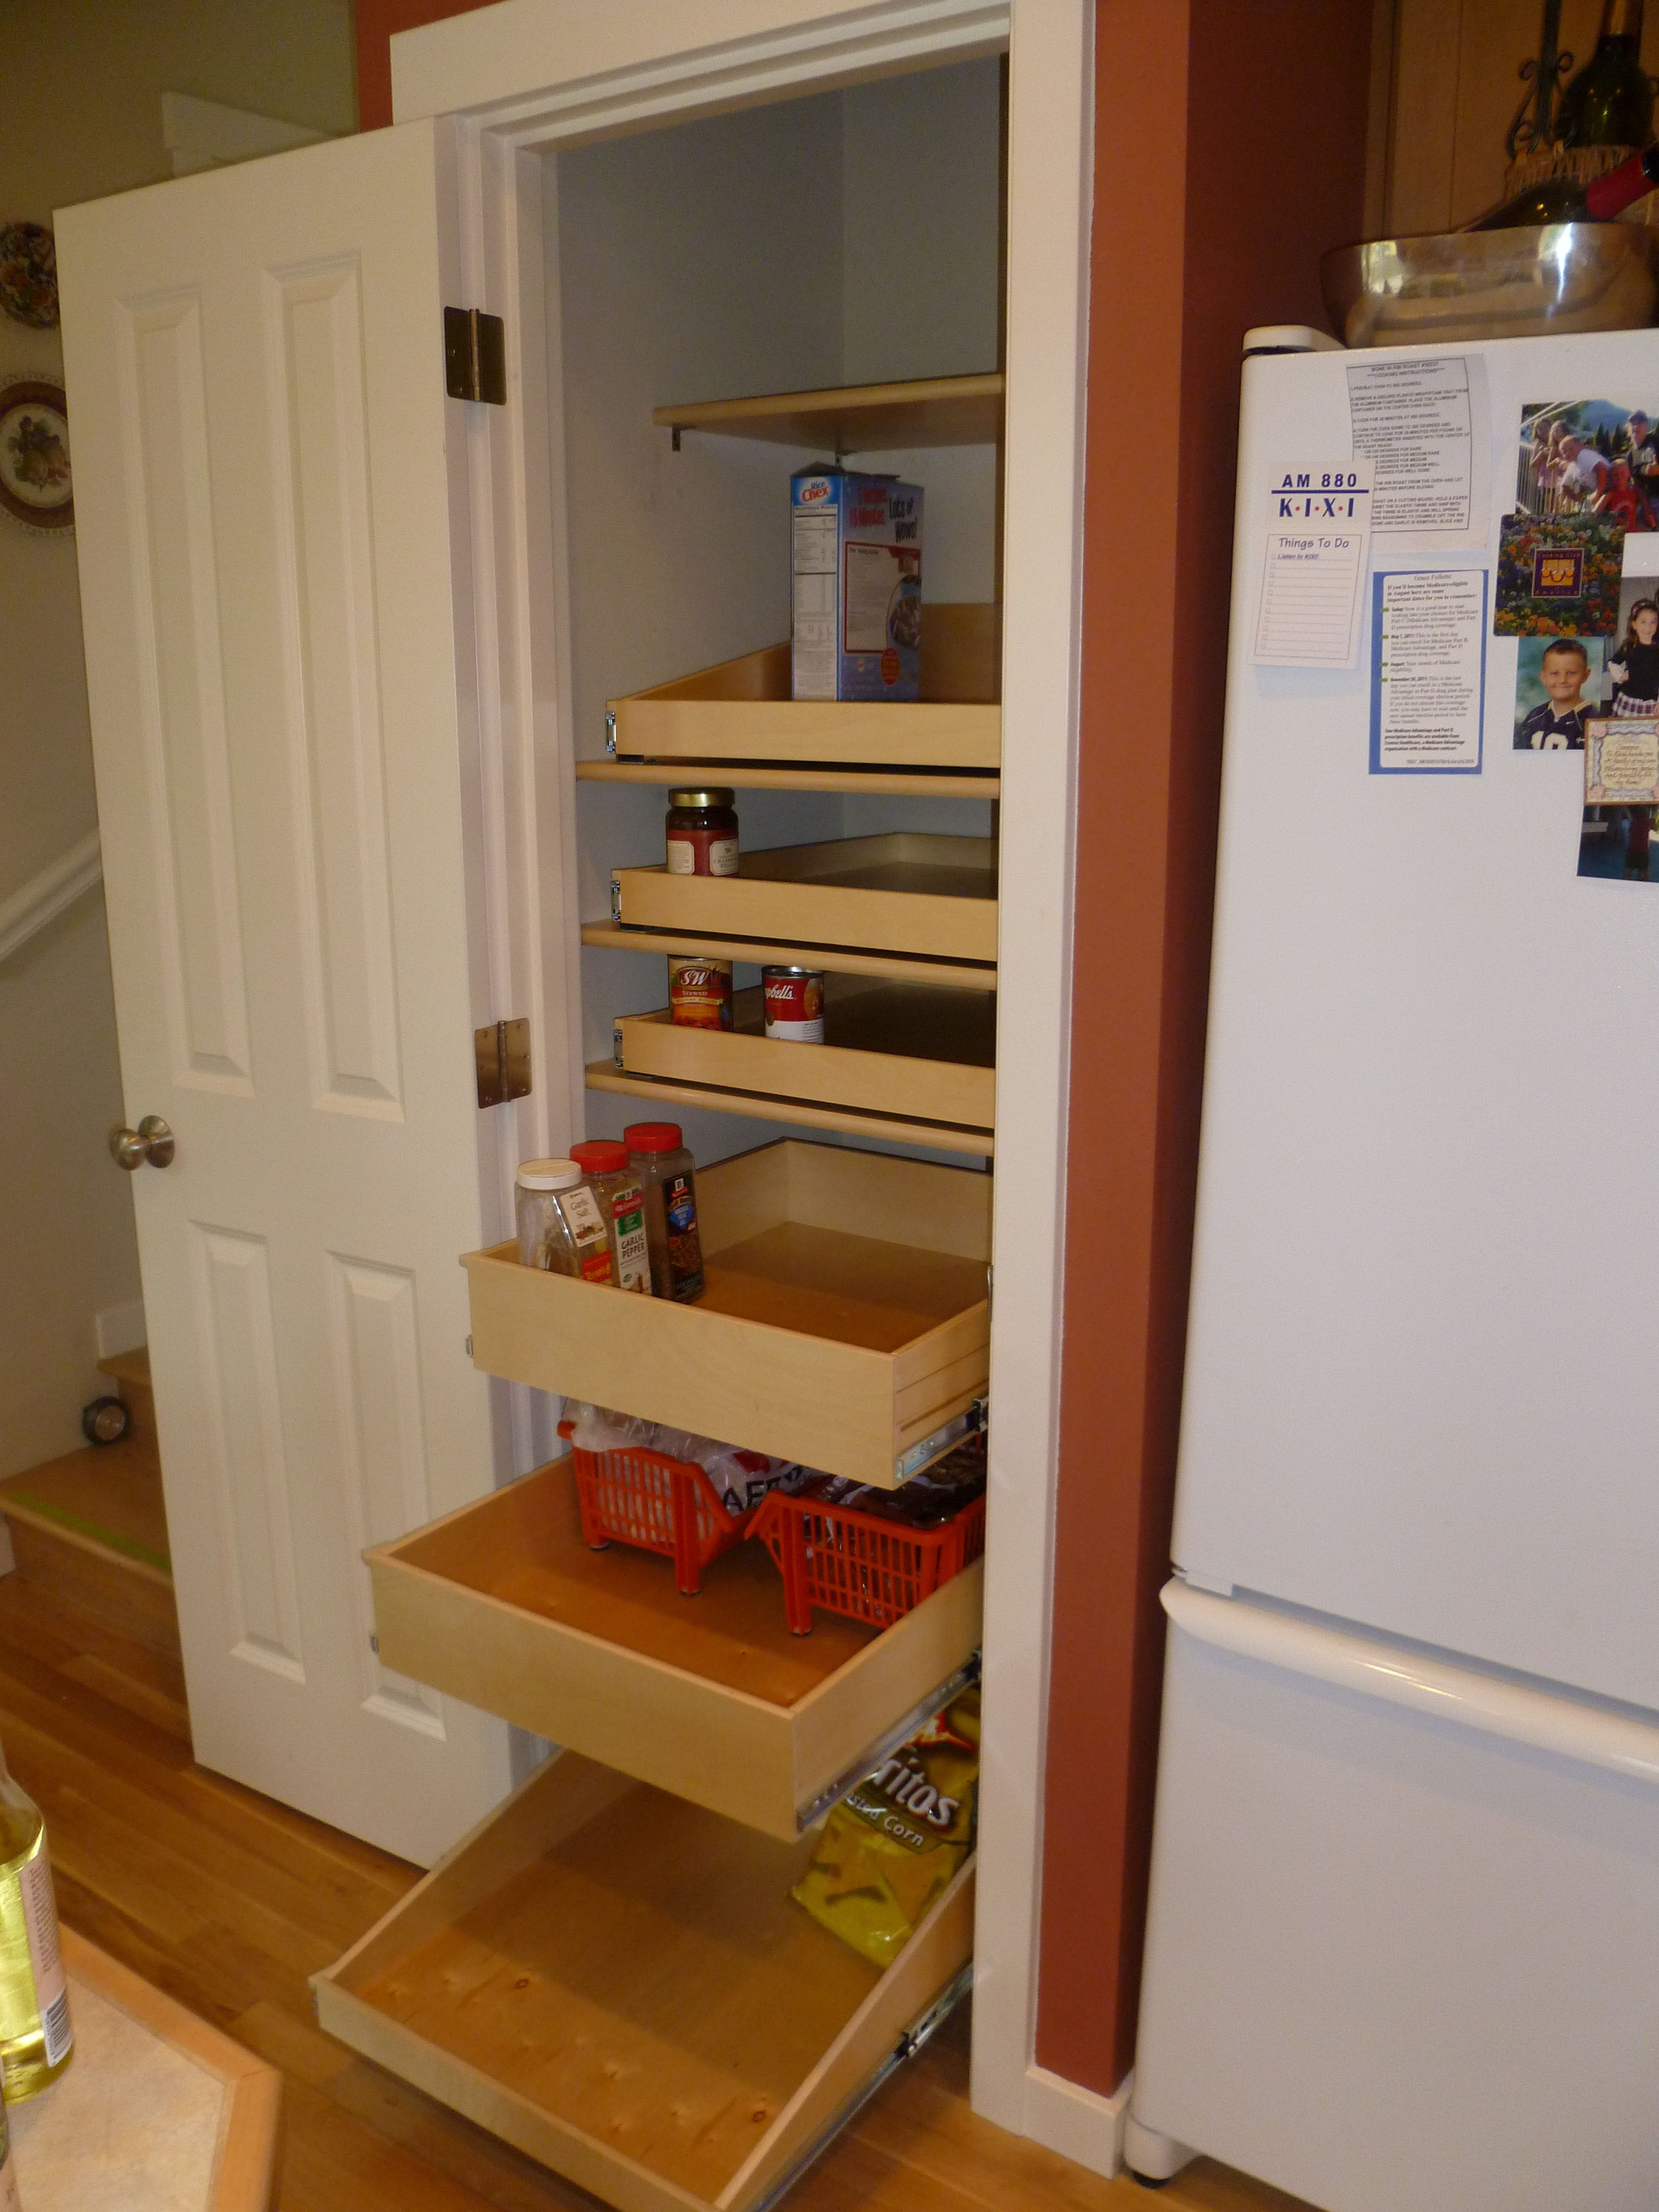 Kitchen Pantry Cabinet Pull Out Shelf Storage Sliding Shelves in ...